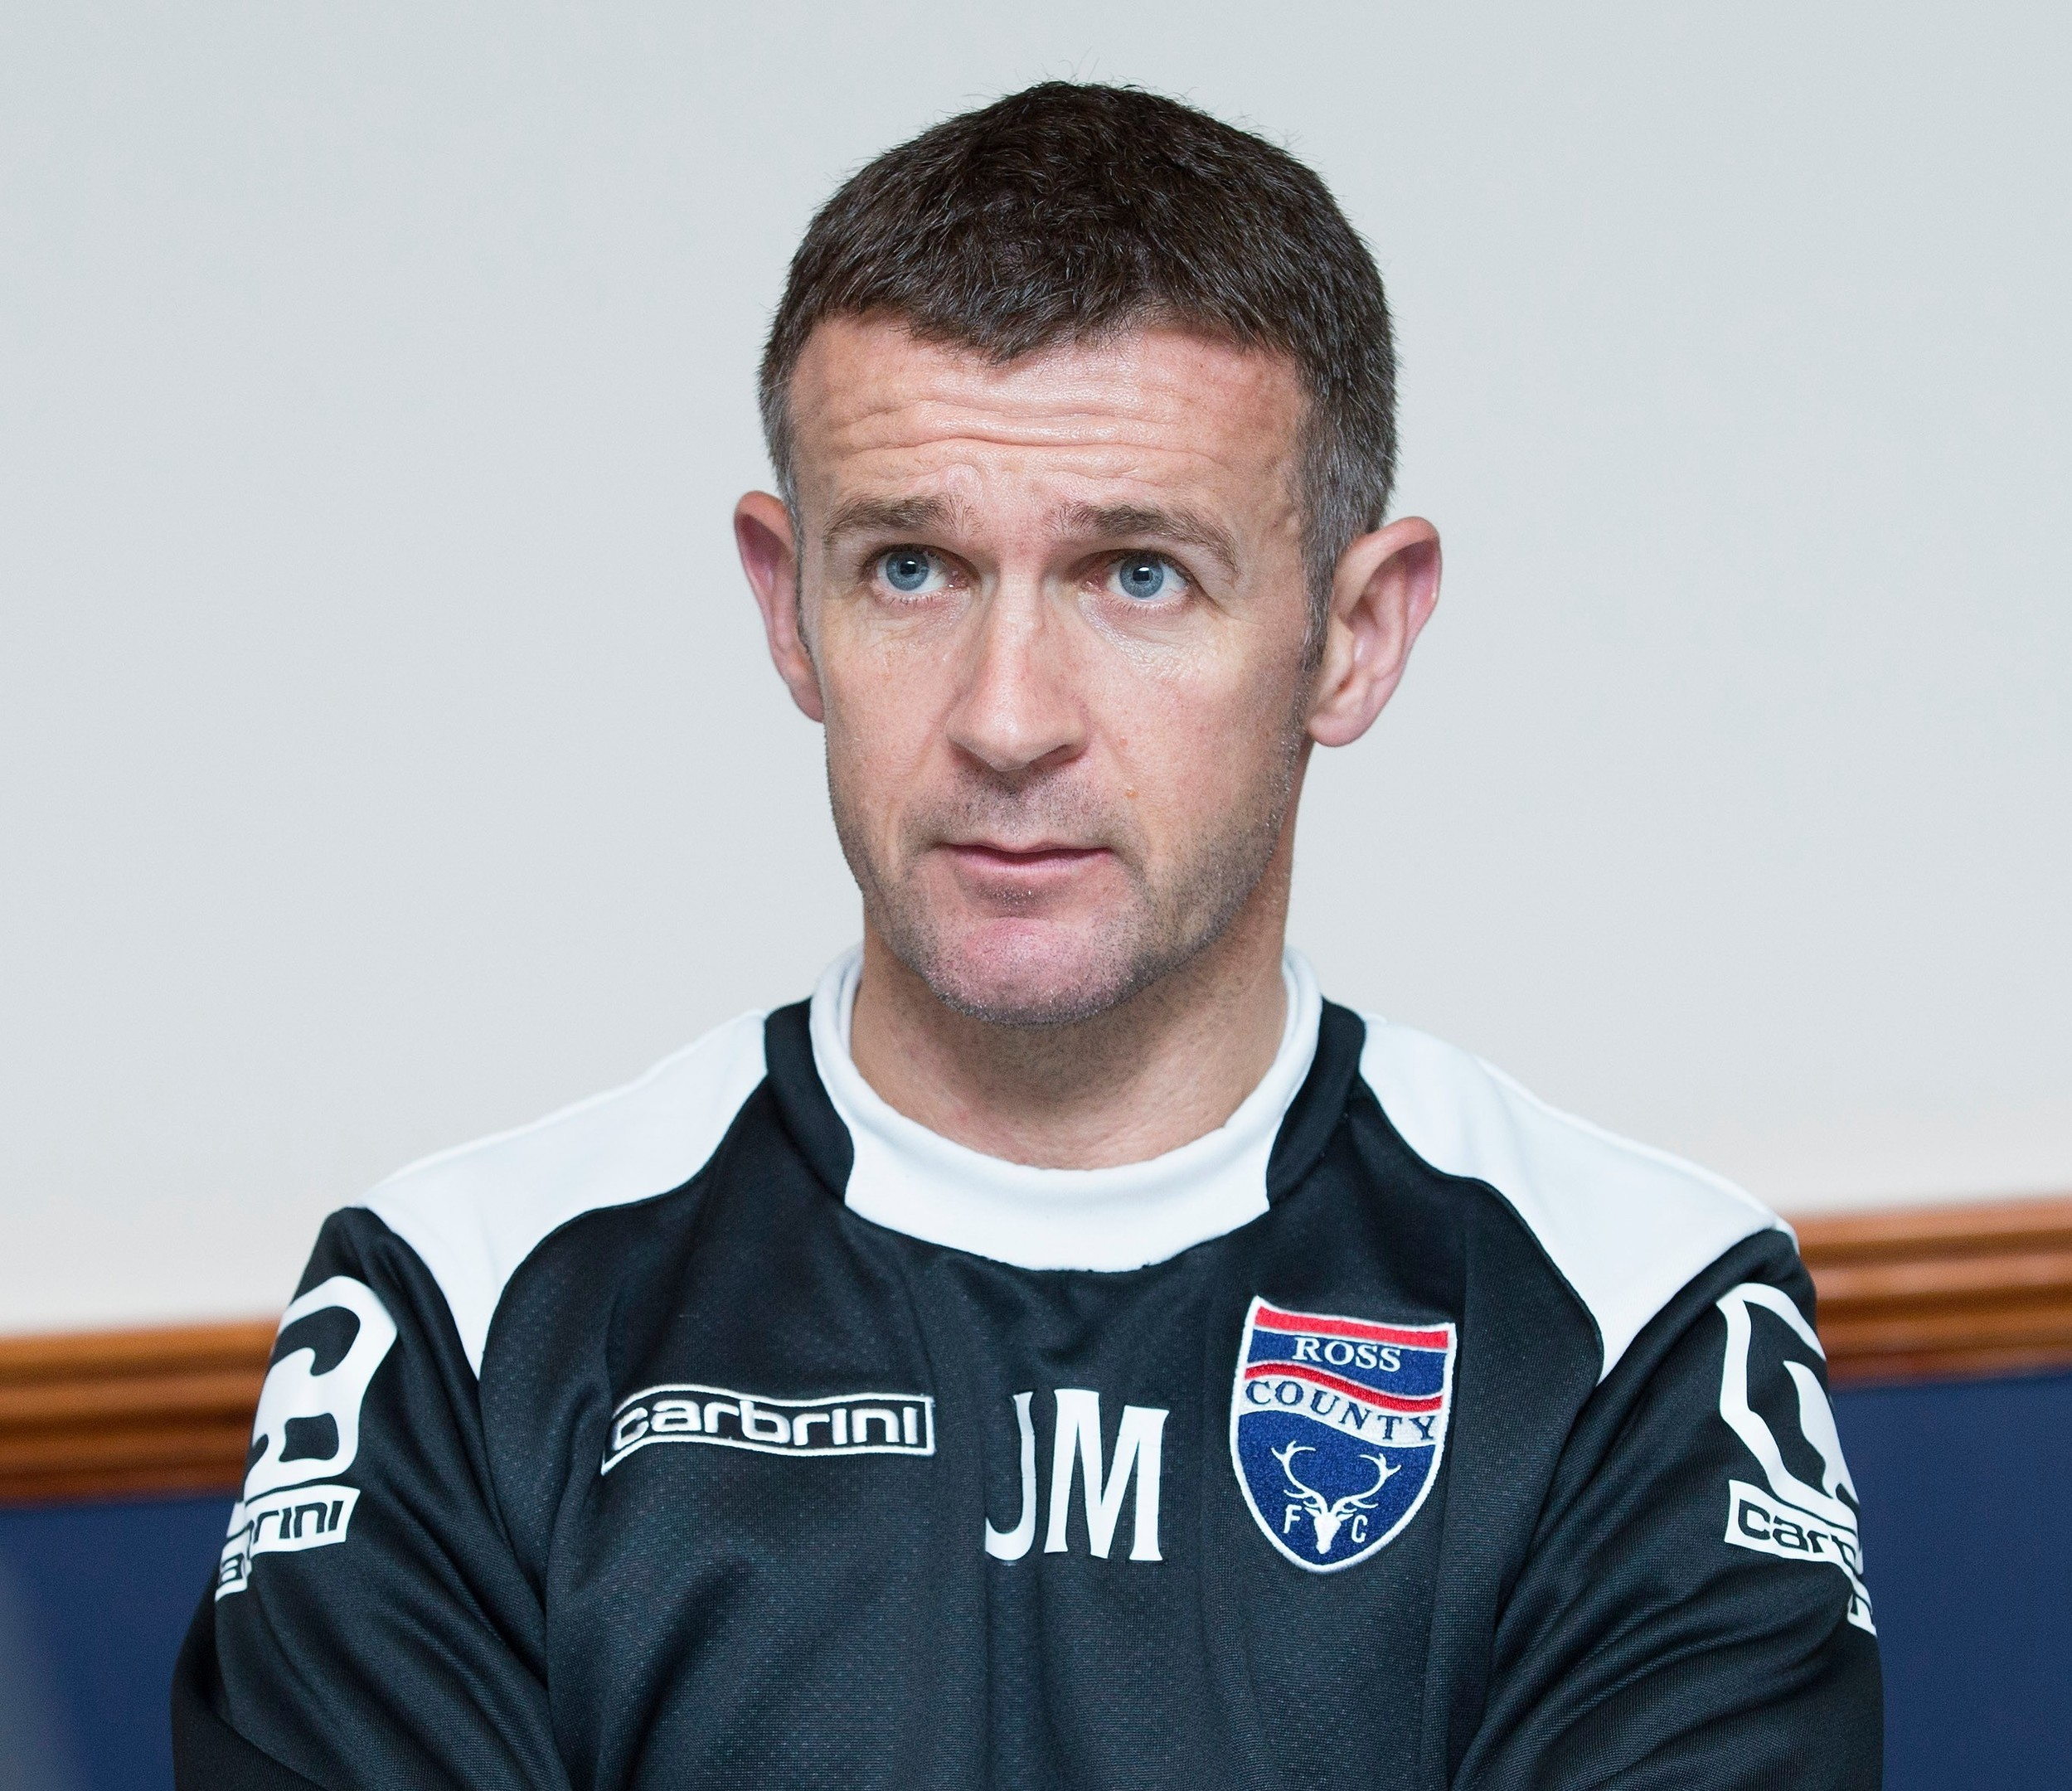 Ross County manager Jim McIntyre is looking to continue the fine start to the season.